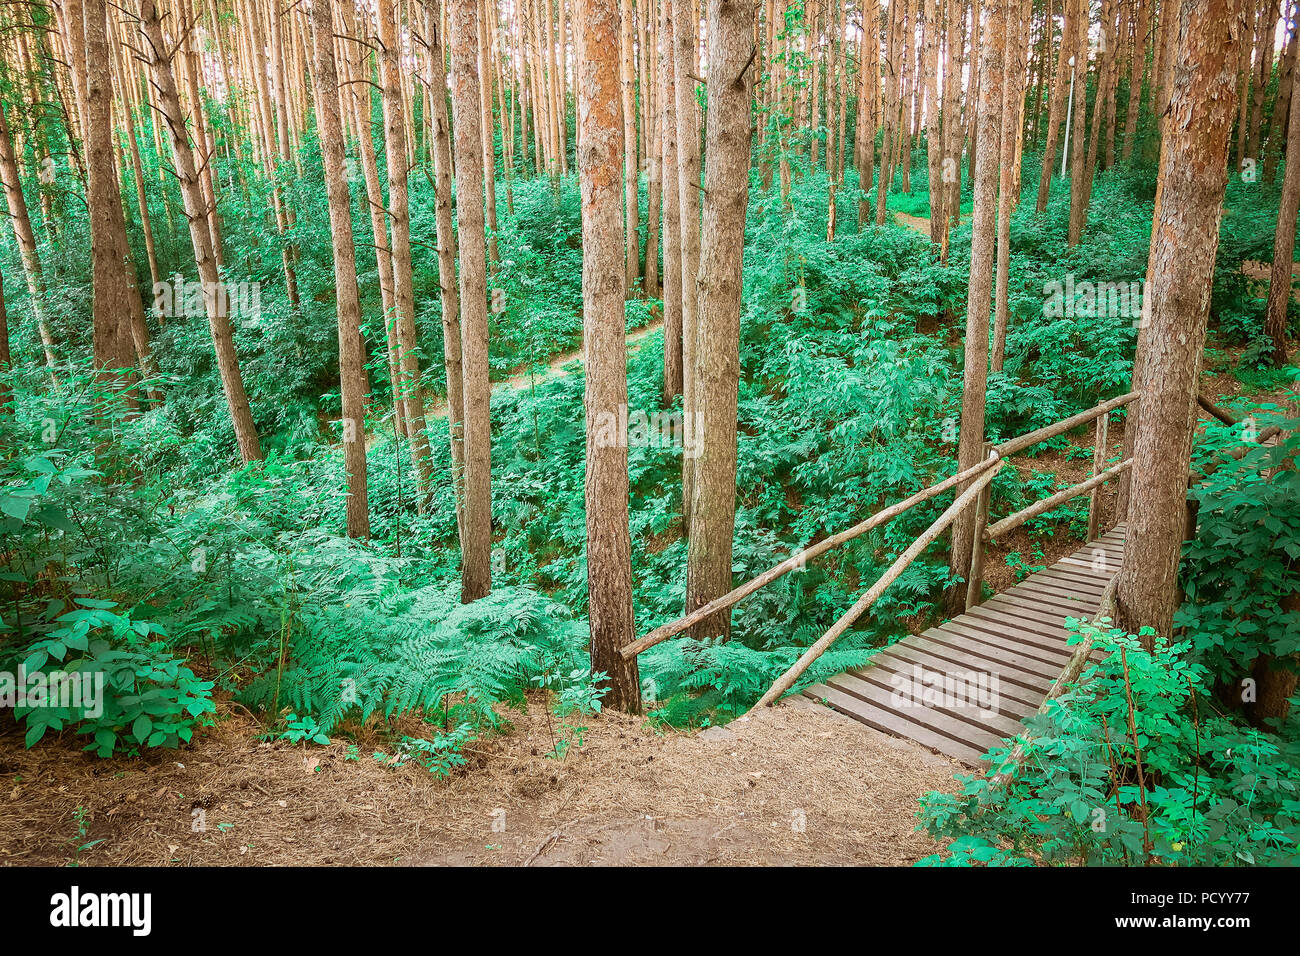 The wooden path leading through a green forest. View on tourist wooden pathway among trees and grass. Russian nature. Stock Photo